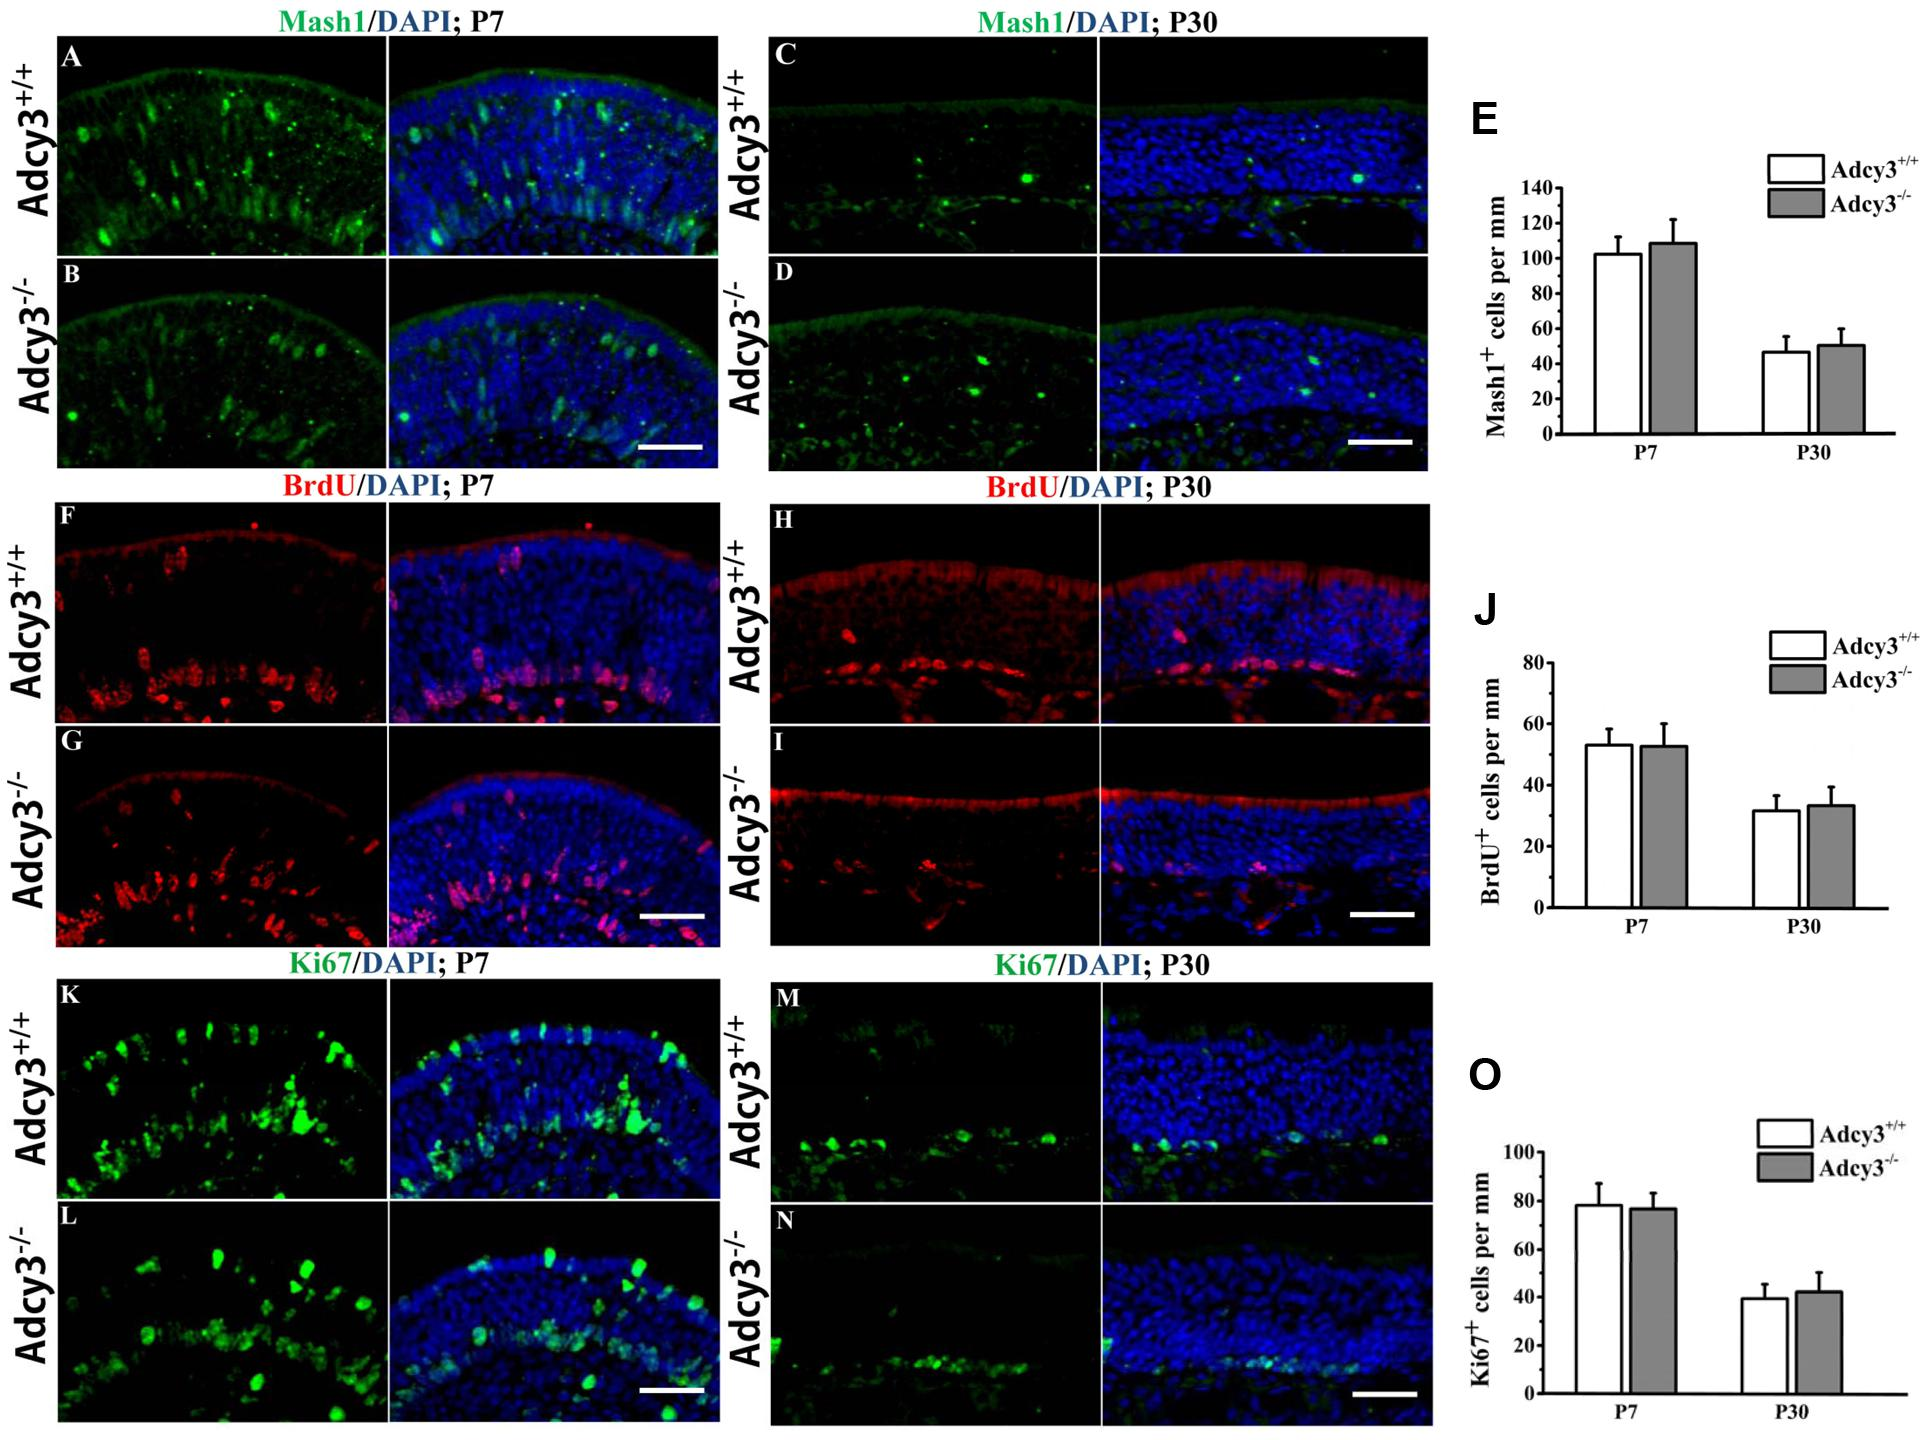 Frontiers   Deletion of Type 3 Adenylyl Cyclase Perturbs the